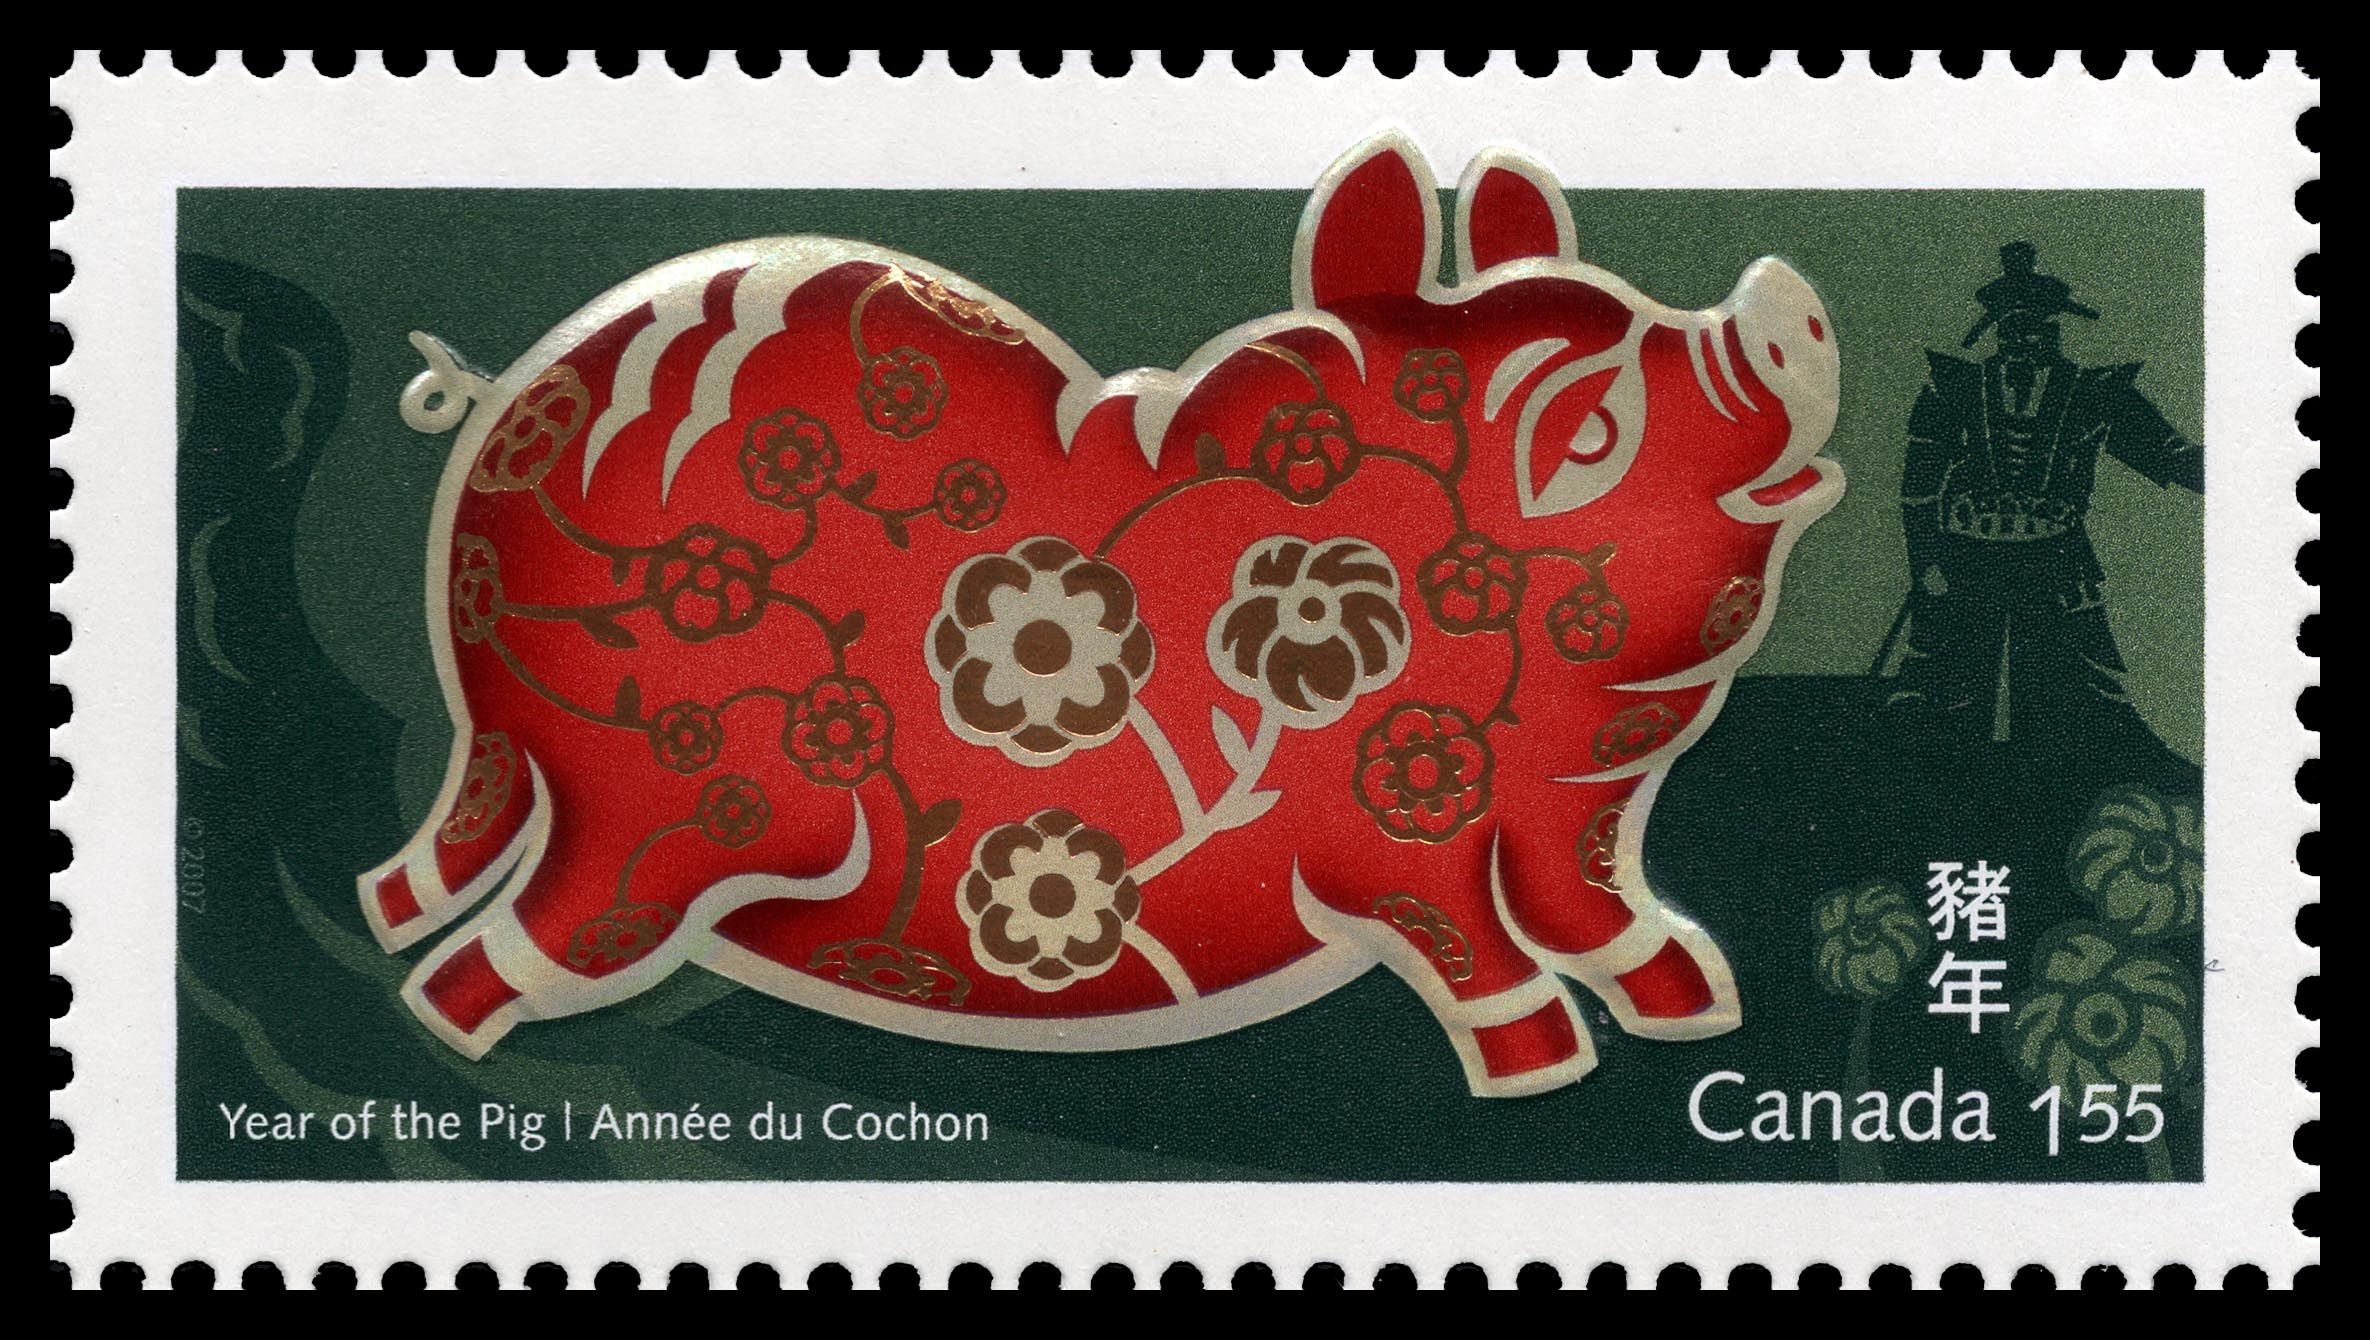 Year of the Pig Canada Postage Stamp